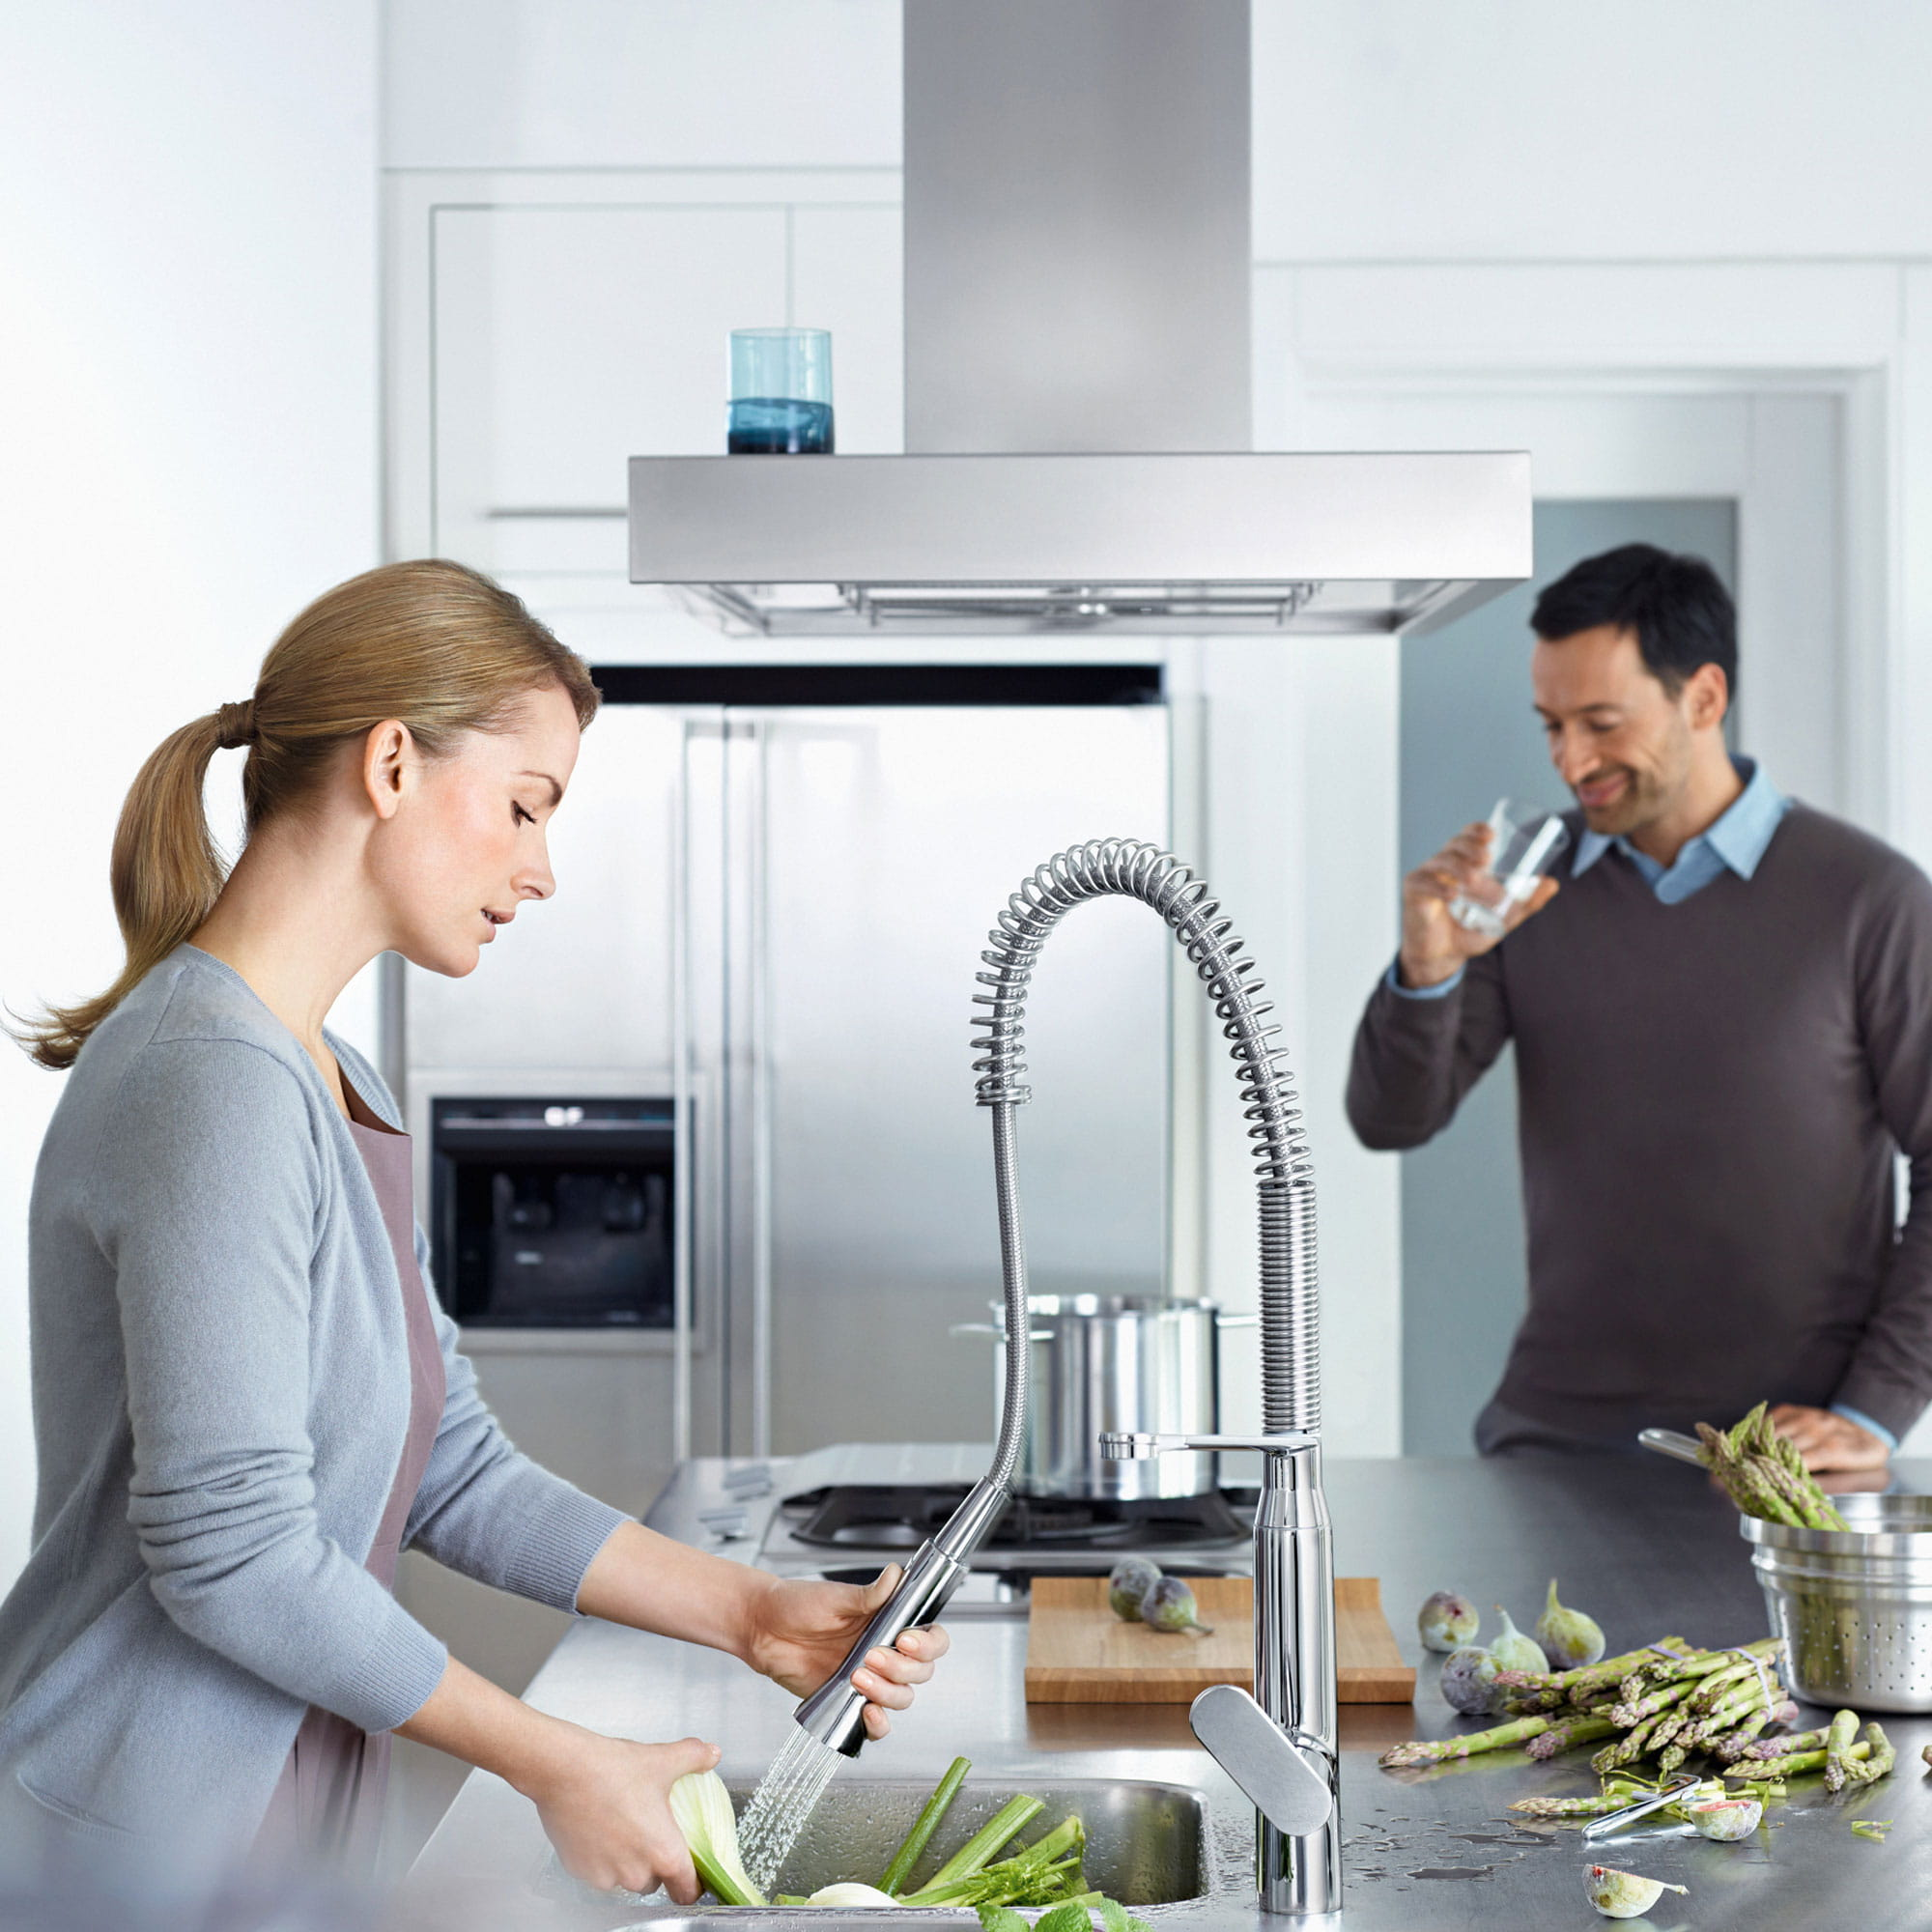 people in kitchen while washing vegetables